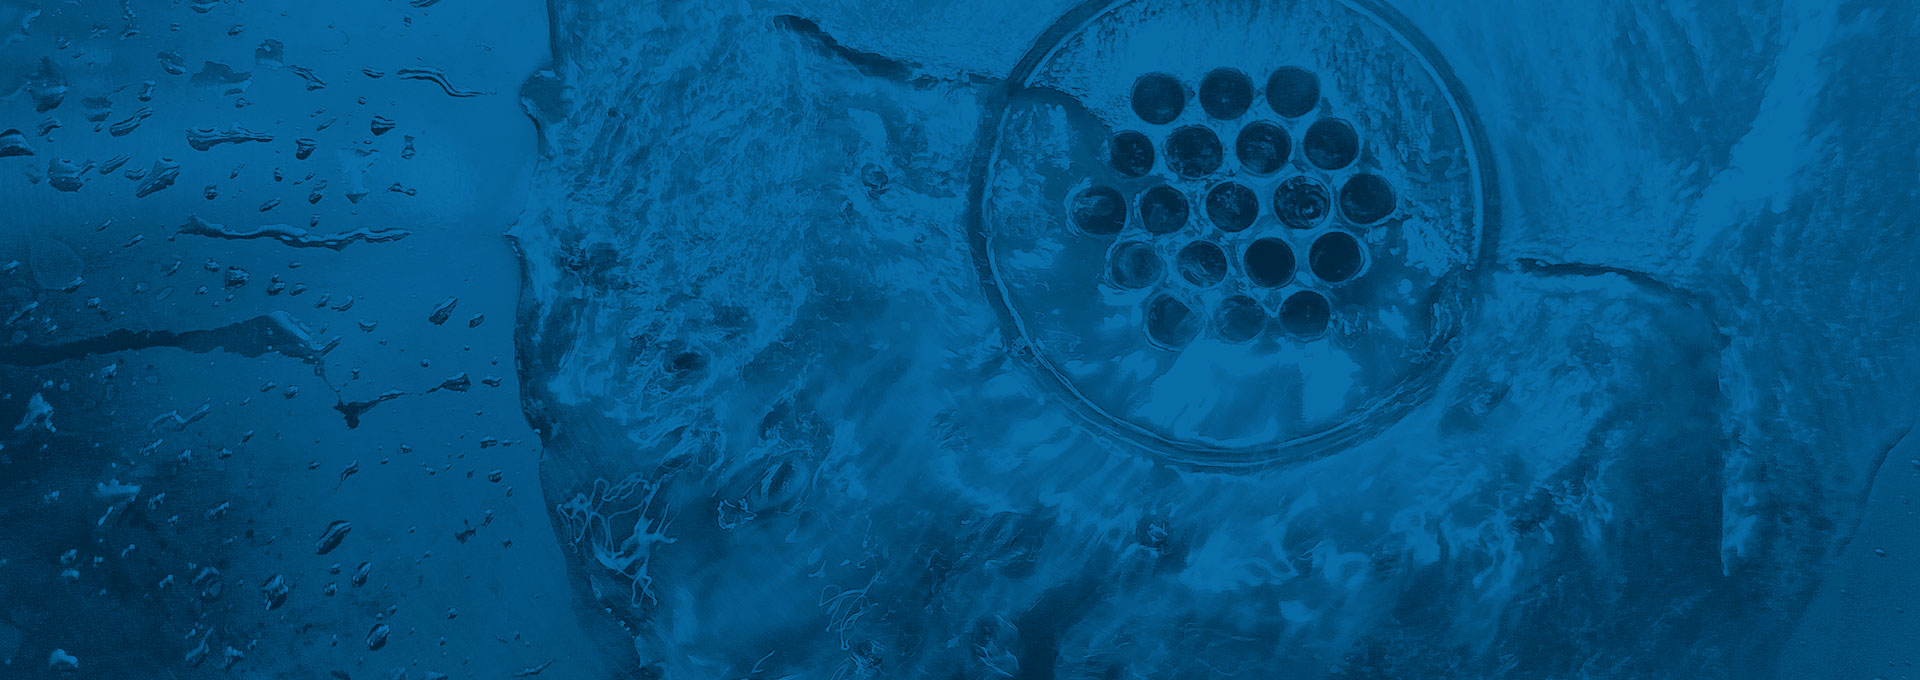 Drain Maintenance and Eco-Friendly Cleaning Products: Doing Your Part to Keep Drains Clean